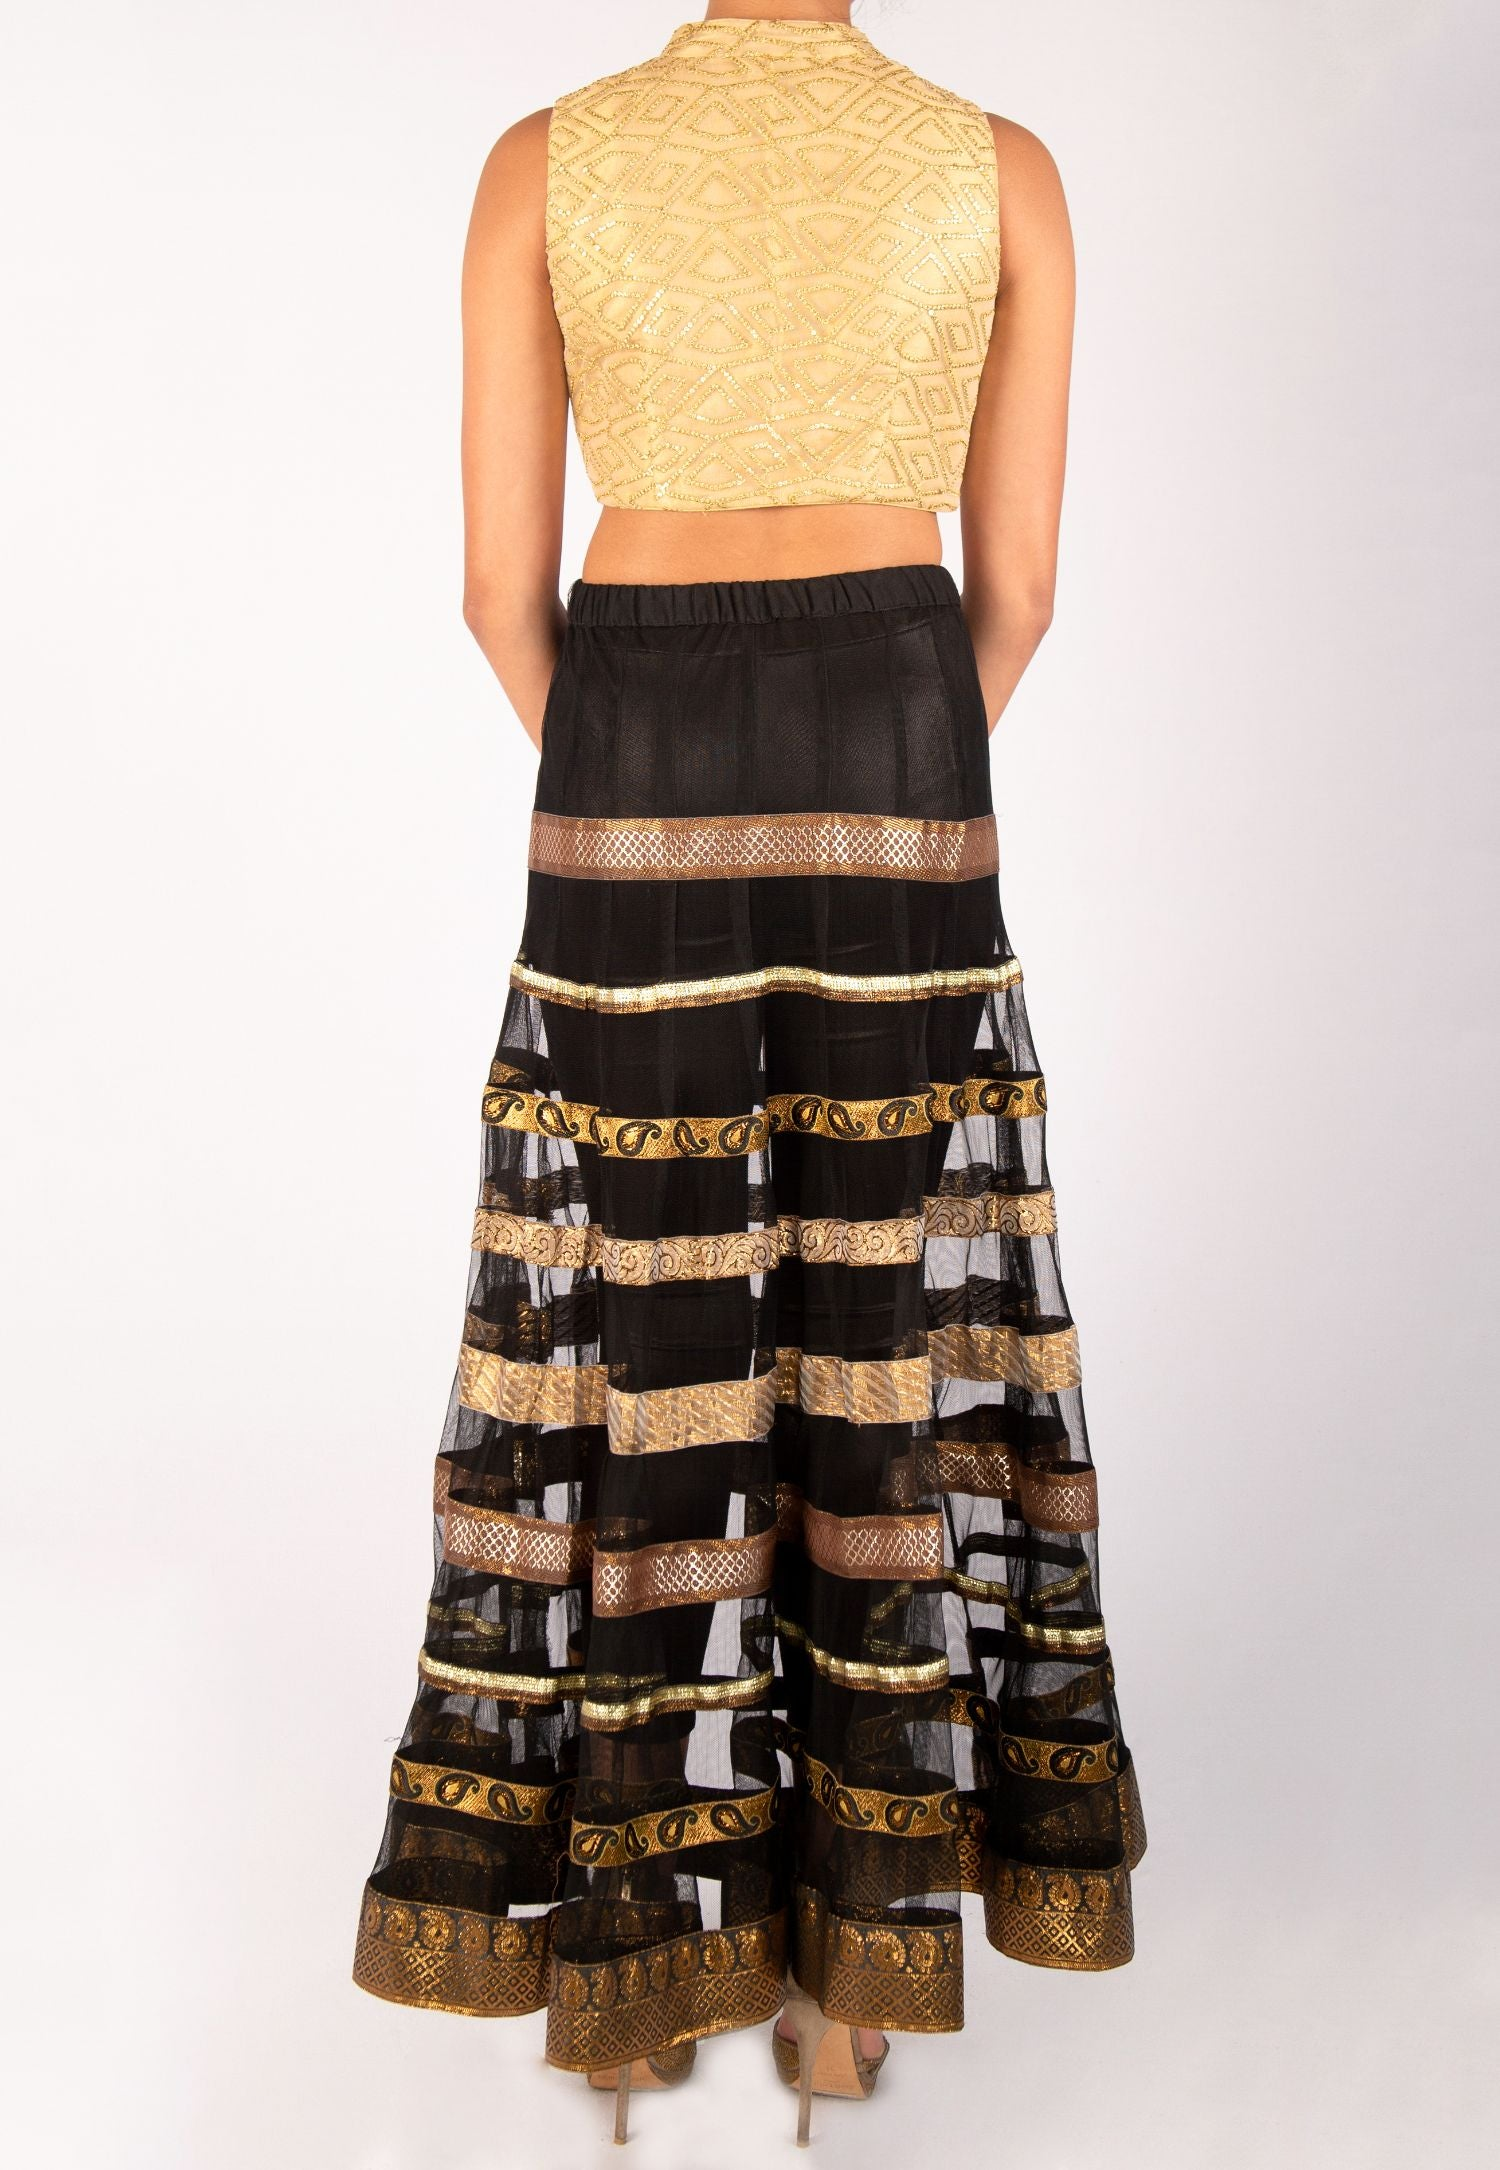 GOLD AND BLACK SHEER STRIPED LEHENGA WITH LEGGINGS AND GOLD BLOUSE